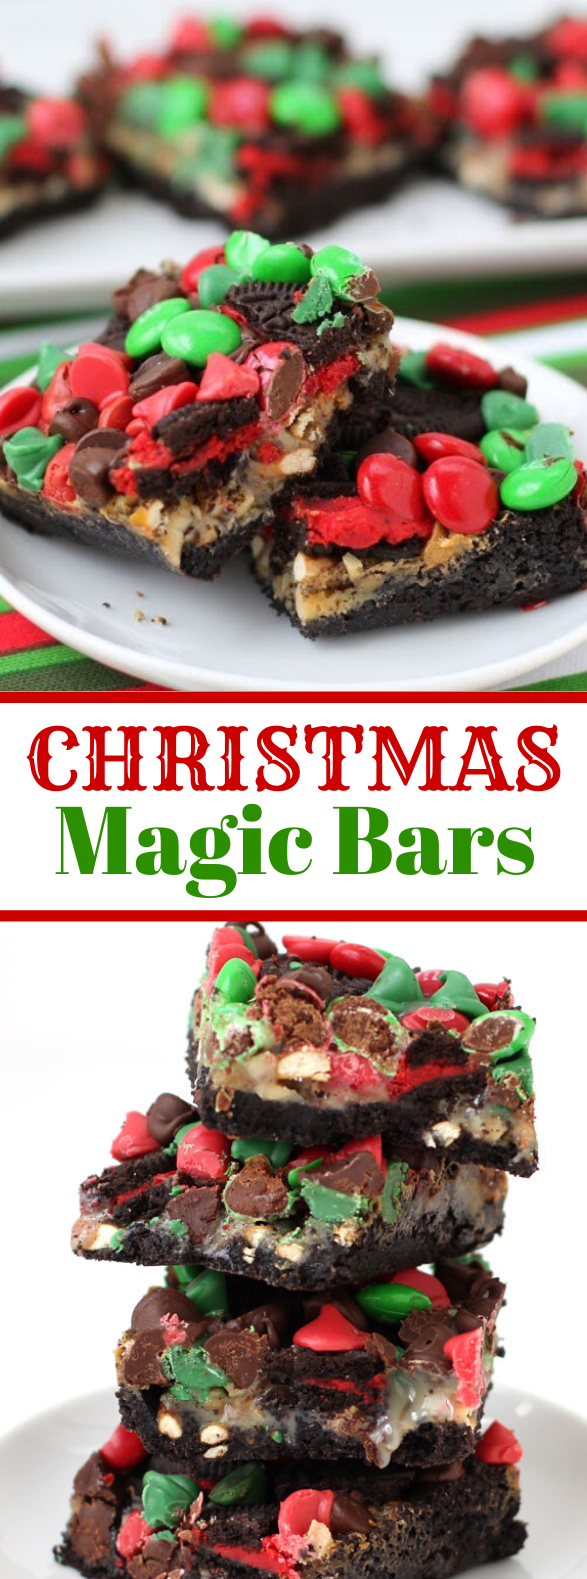 Christmas Magic Bars topped with Red and Green M&M Candies #desserts #holidayparty